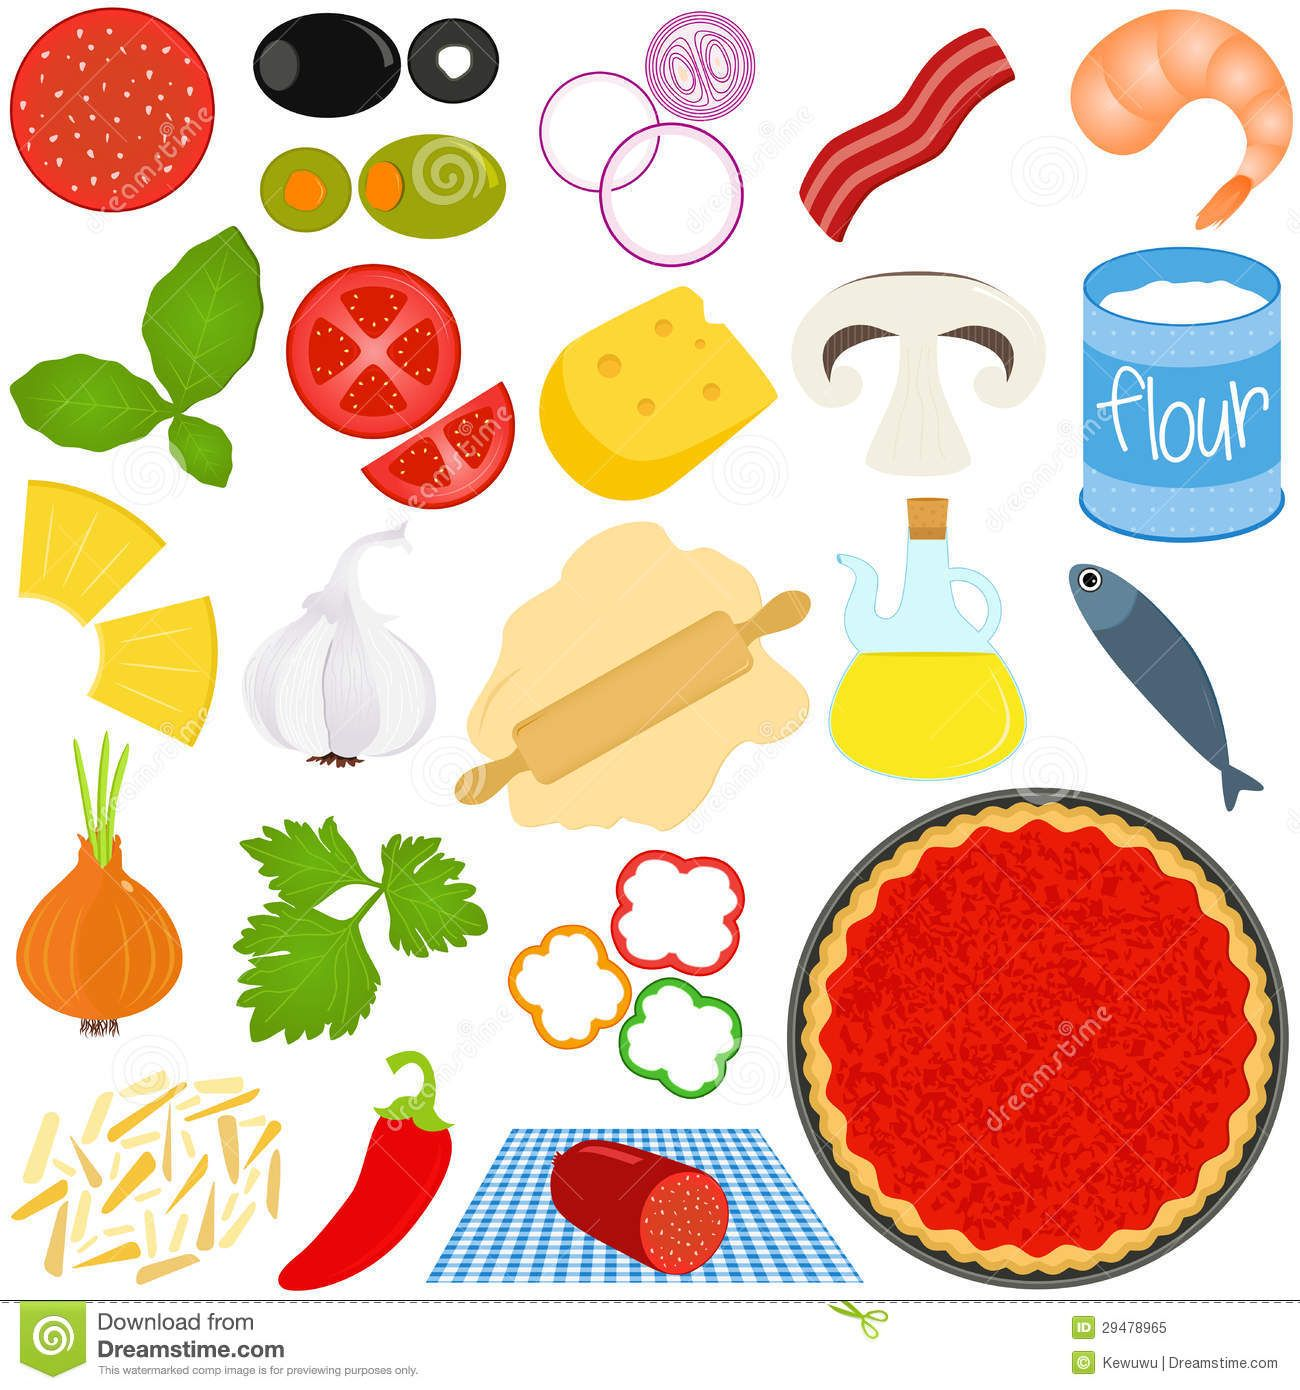 Pizza Toppings Clipart Ingre Nts To Make Pizza With